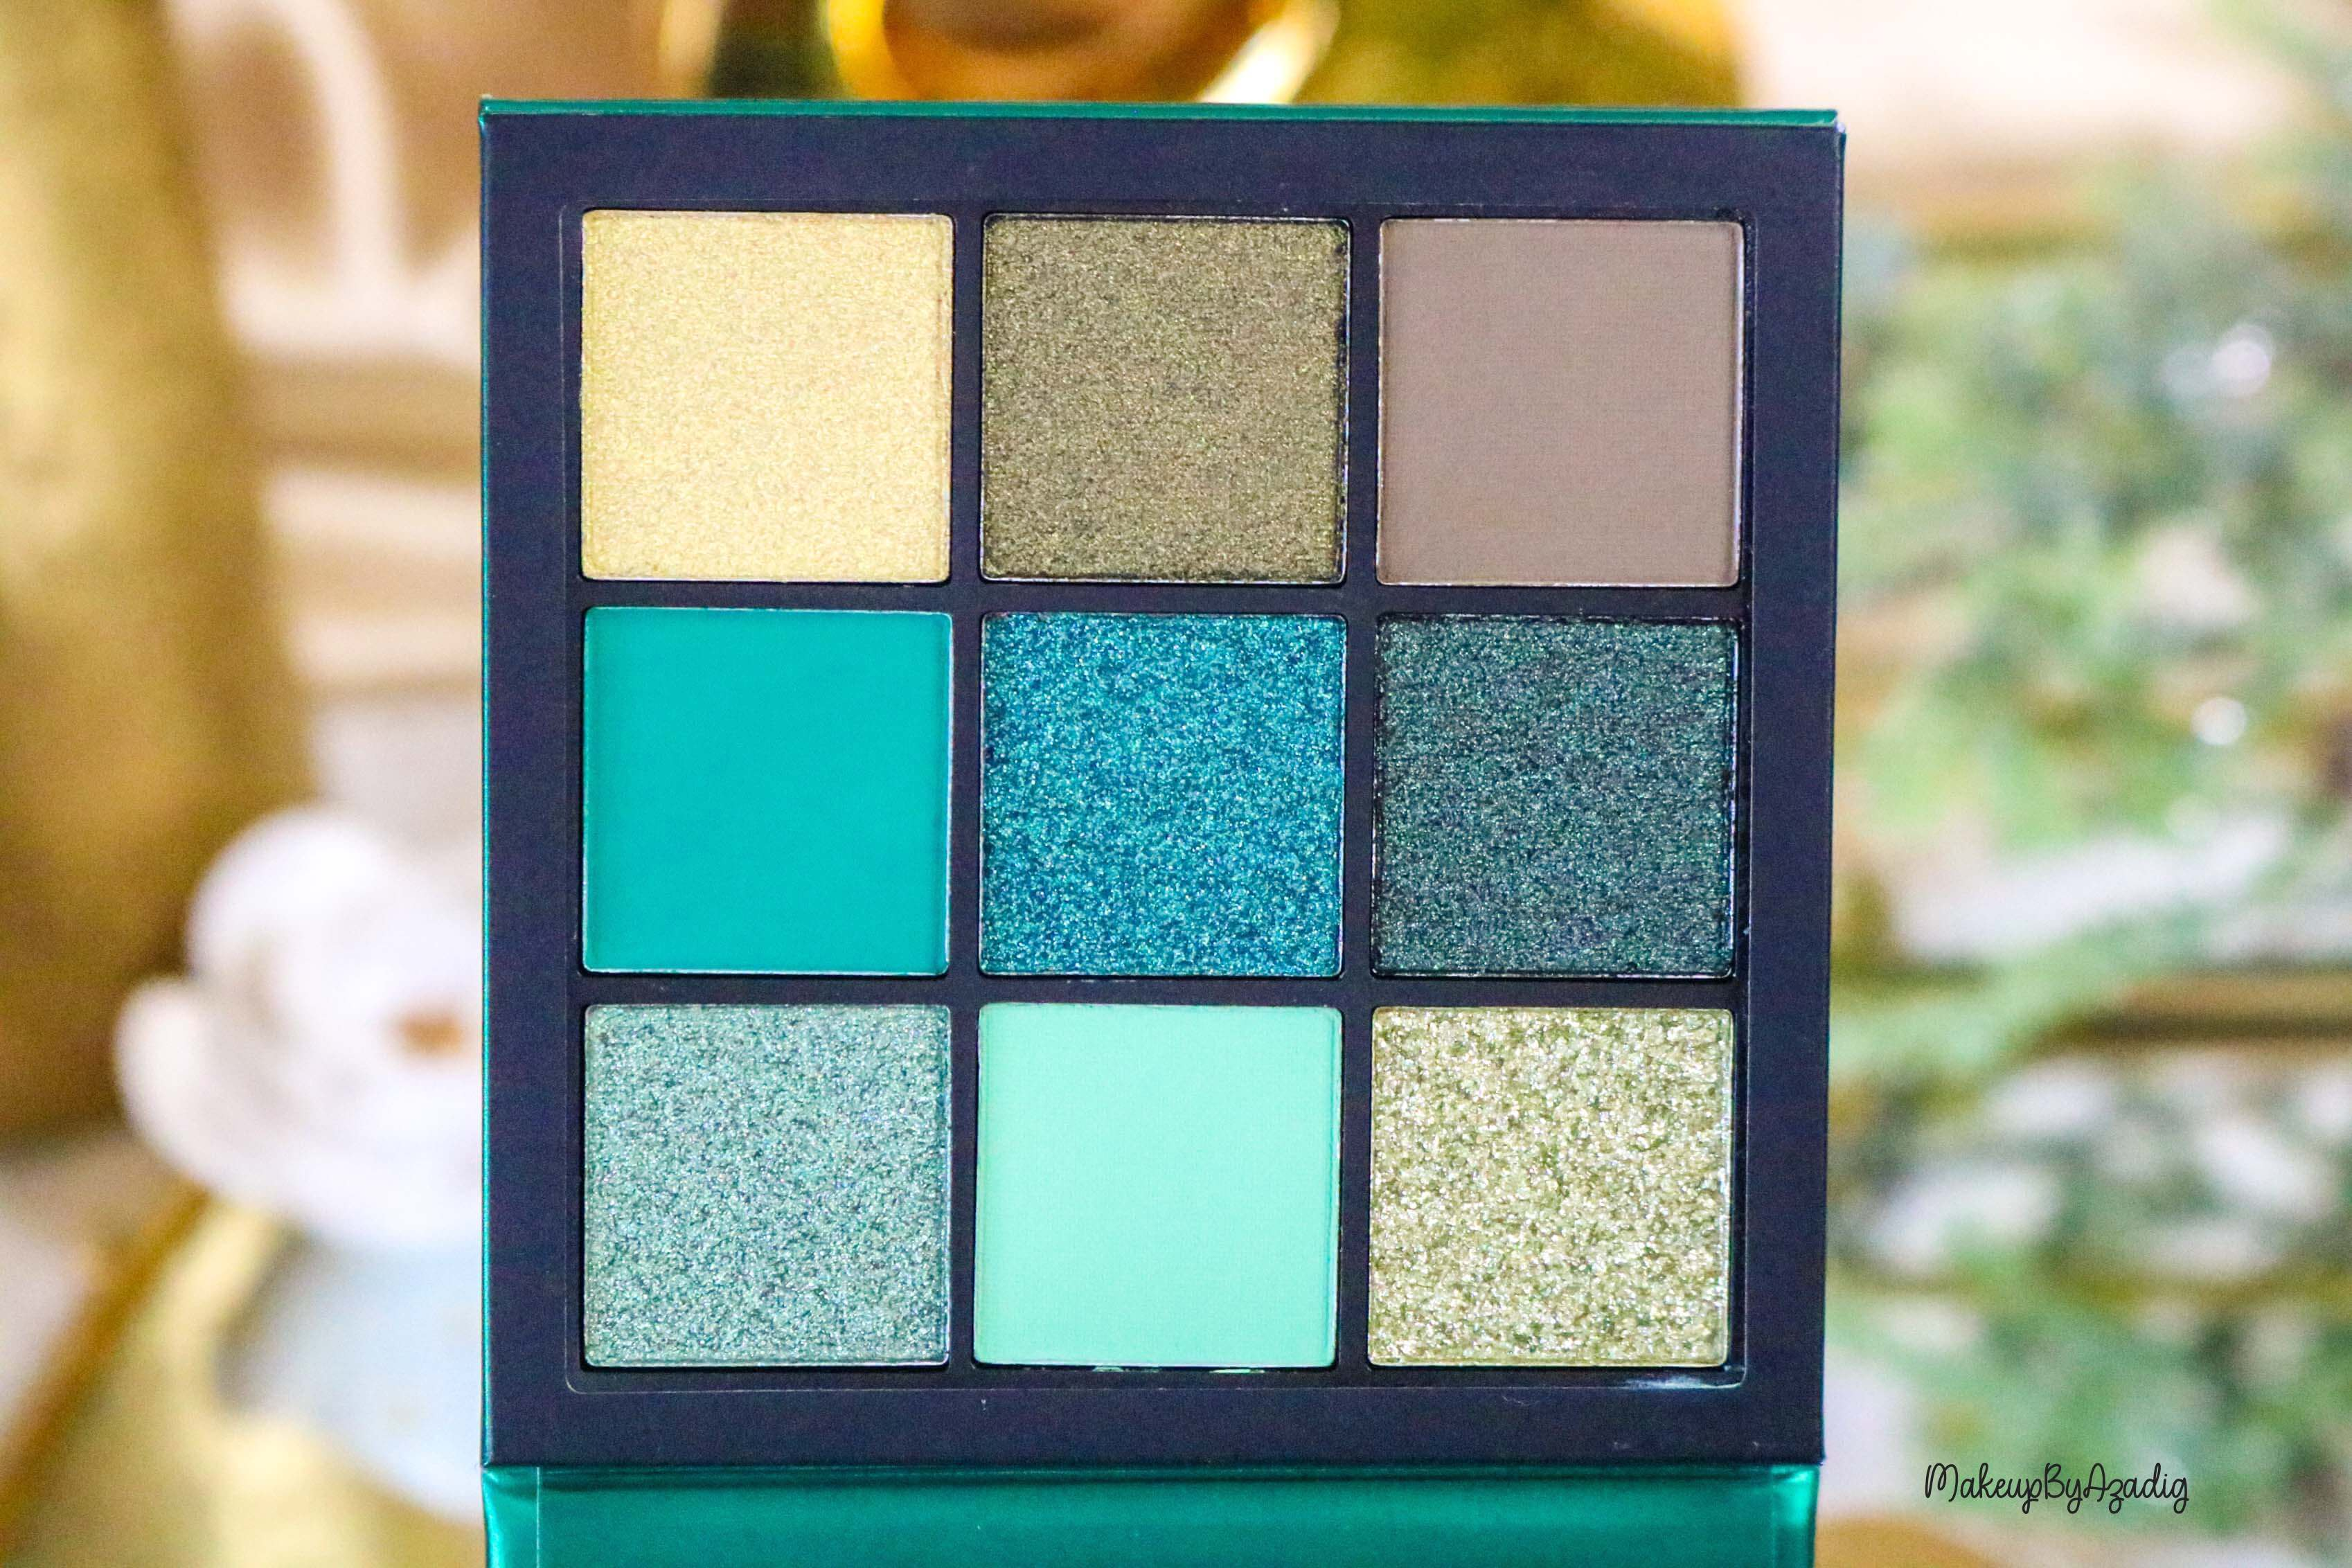 revue-review-palette-emerald-obsessions-huda-beauty-topaz-sapphire-avis-prix-swatch-makeupbyazadig-meilleure-zoom